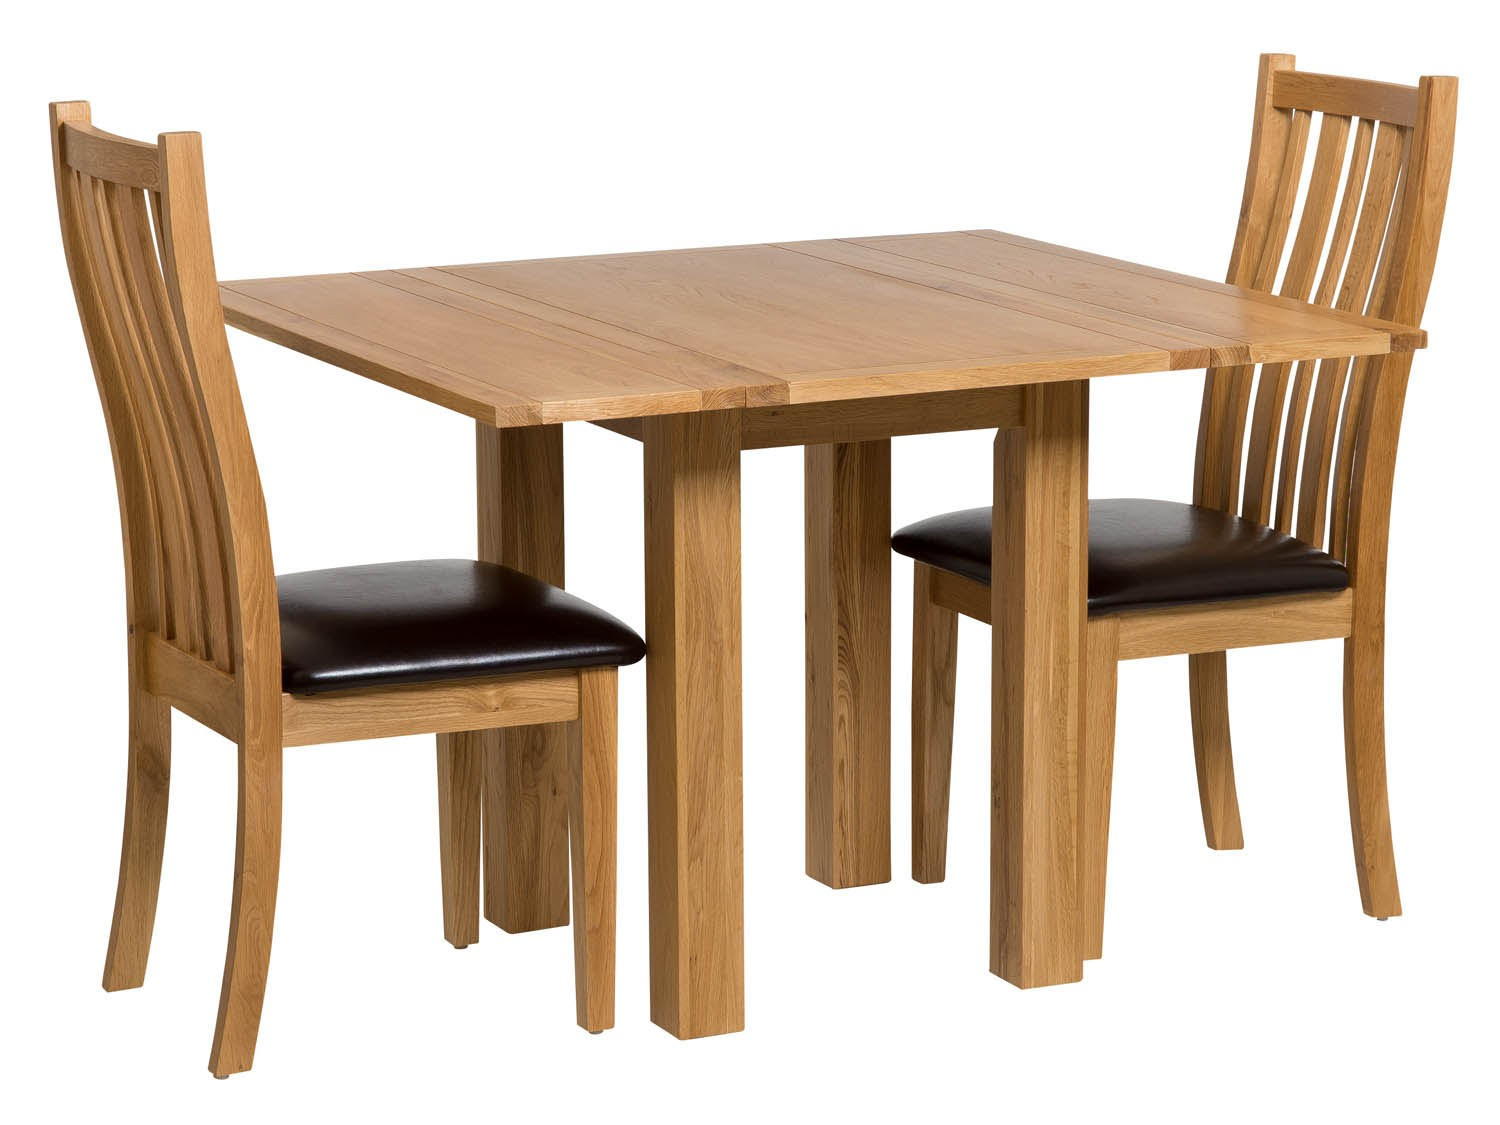 Waverly oak small extending table with folding leaves for Small dining table for 6